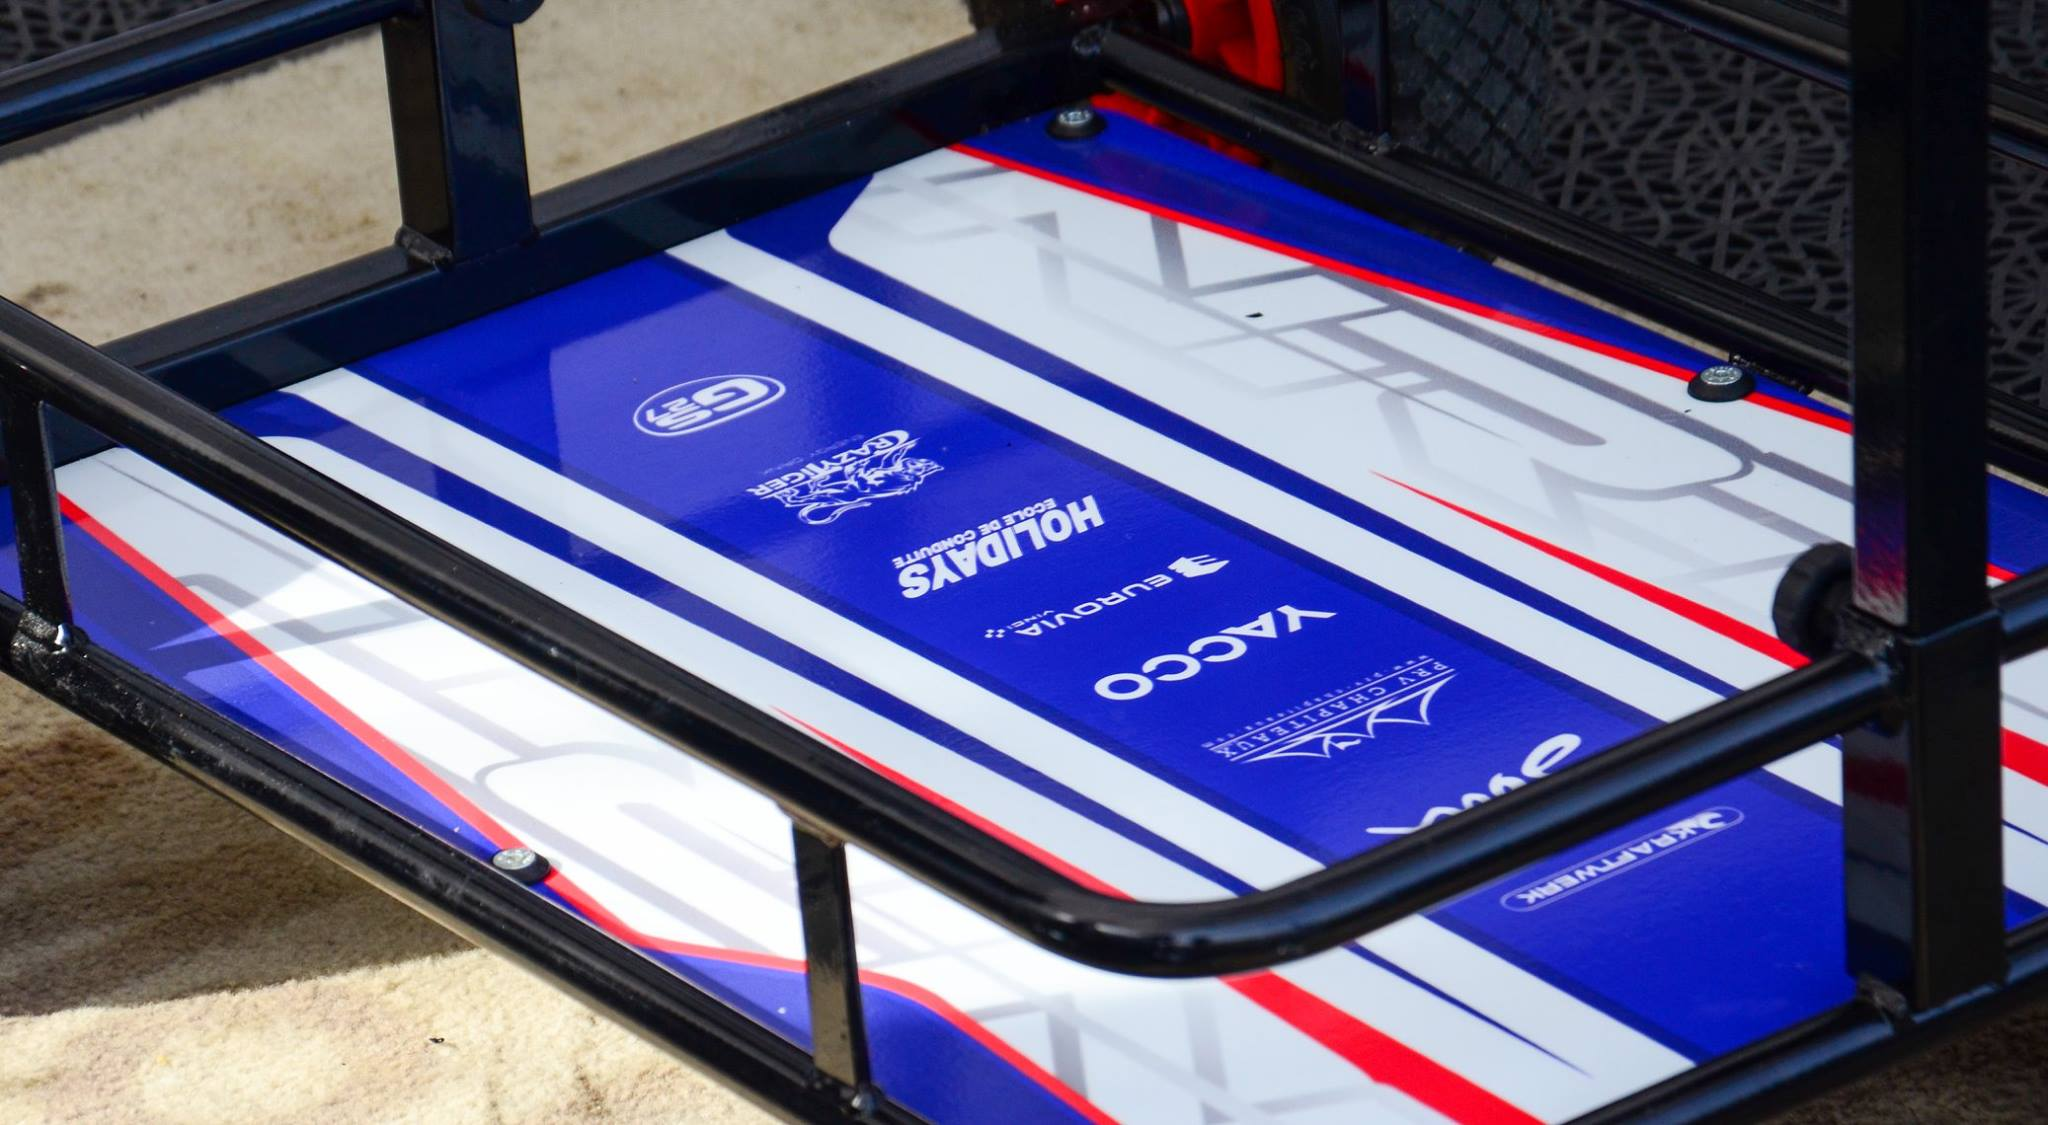 Impression de stickers transparent sur karting